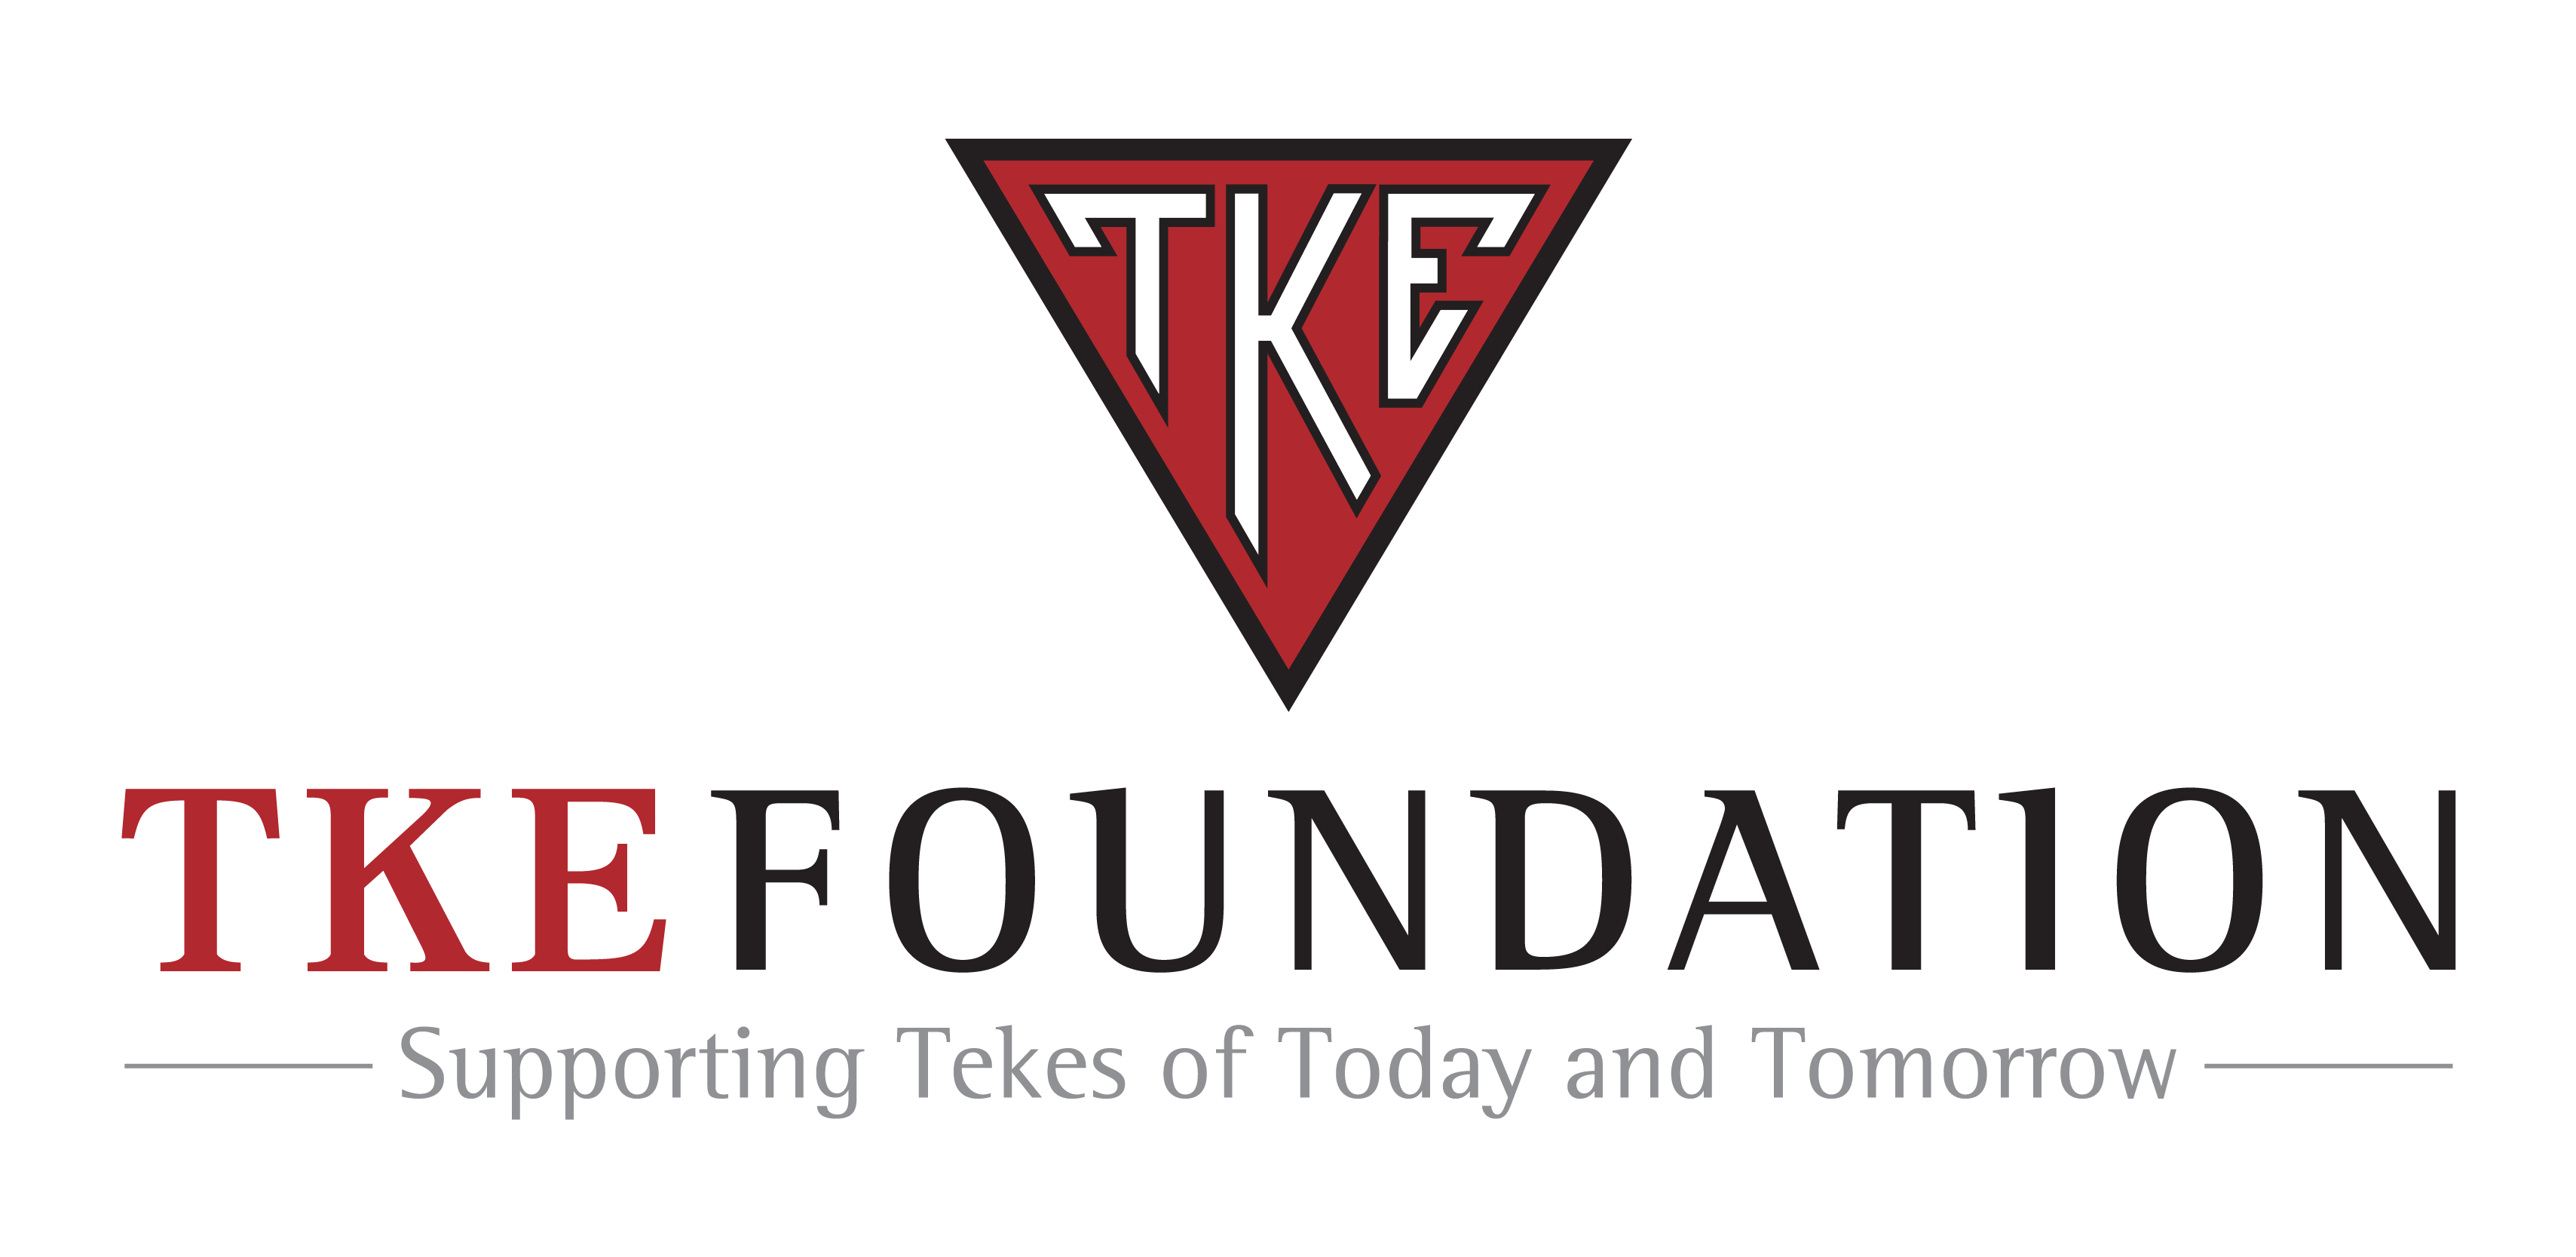 TKE Foundation Awards More Than $93,000 in Opportunity Fund Scholarships